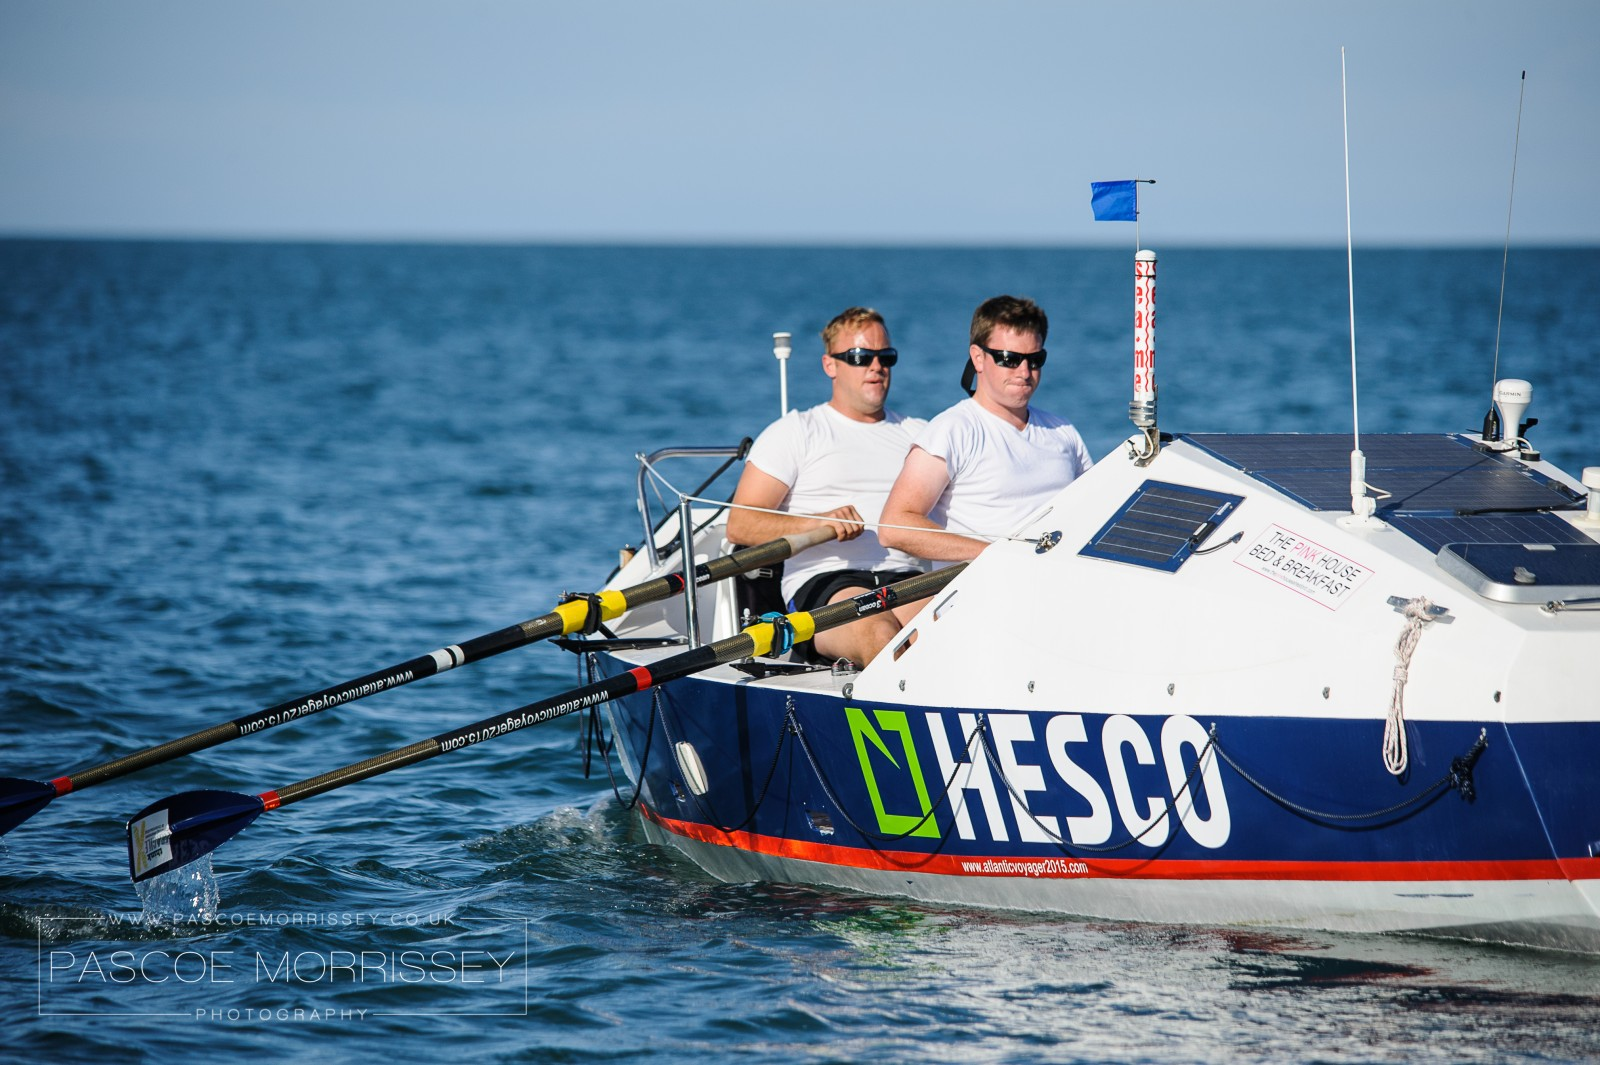 Chadwick and Jones practice for a 3,000-mile rowing race across the Atlantic in their 7m plywood rowboat. PHOTO/WWW.PASCOEMORRISSEY.CO.UK